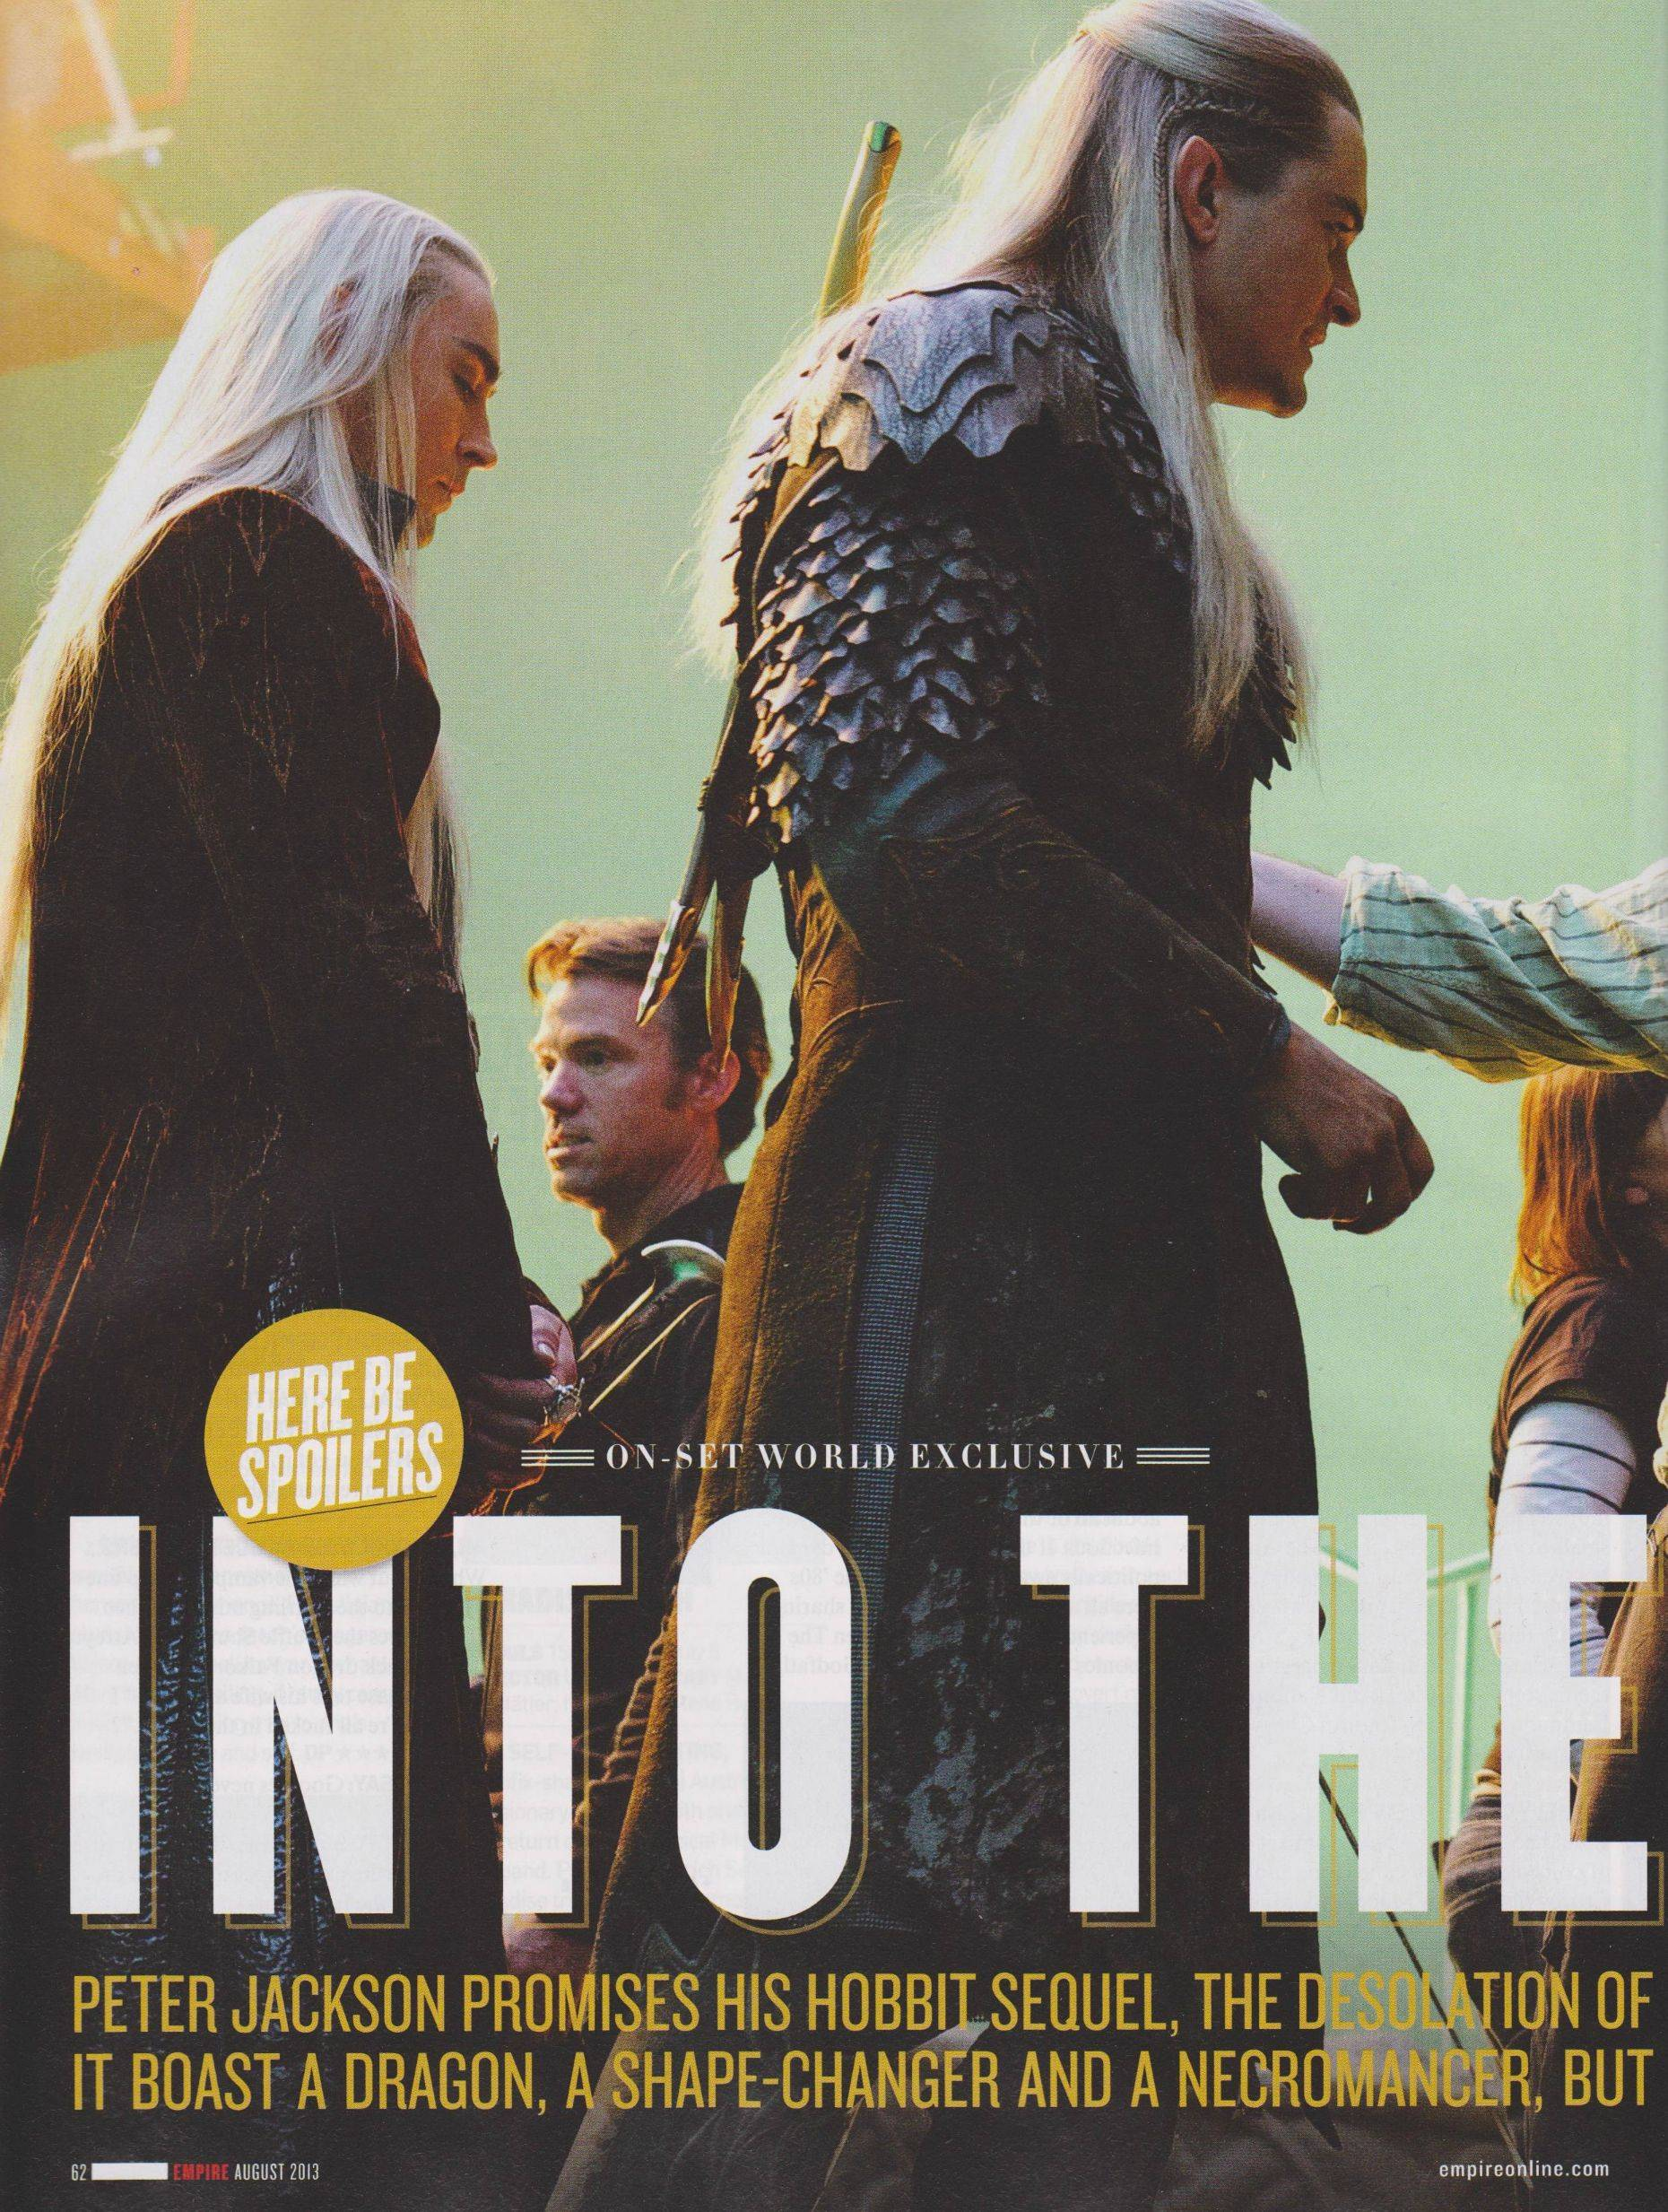 Thranduil | The One Wiki to Rule Them All | FANDOM powered